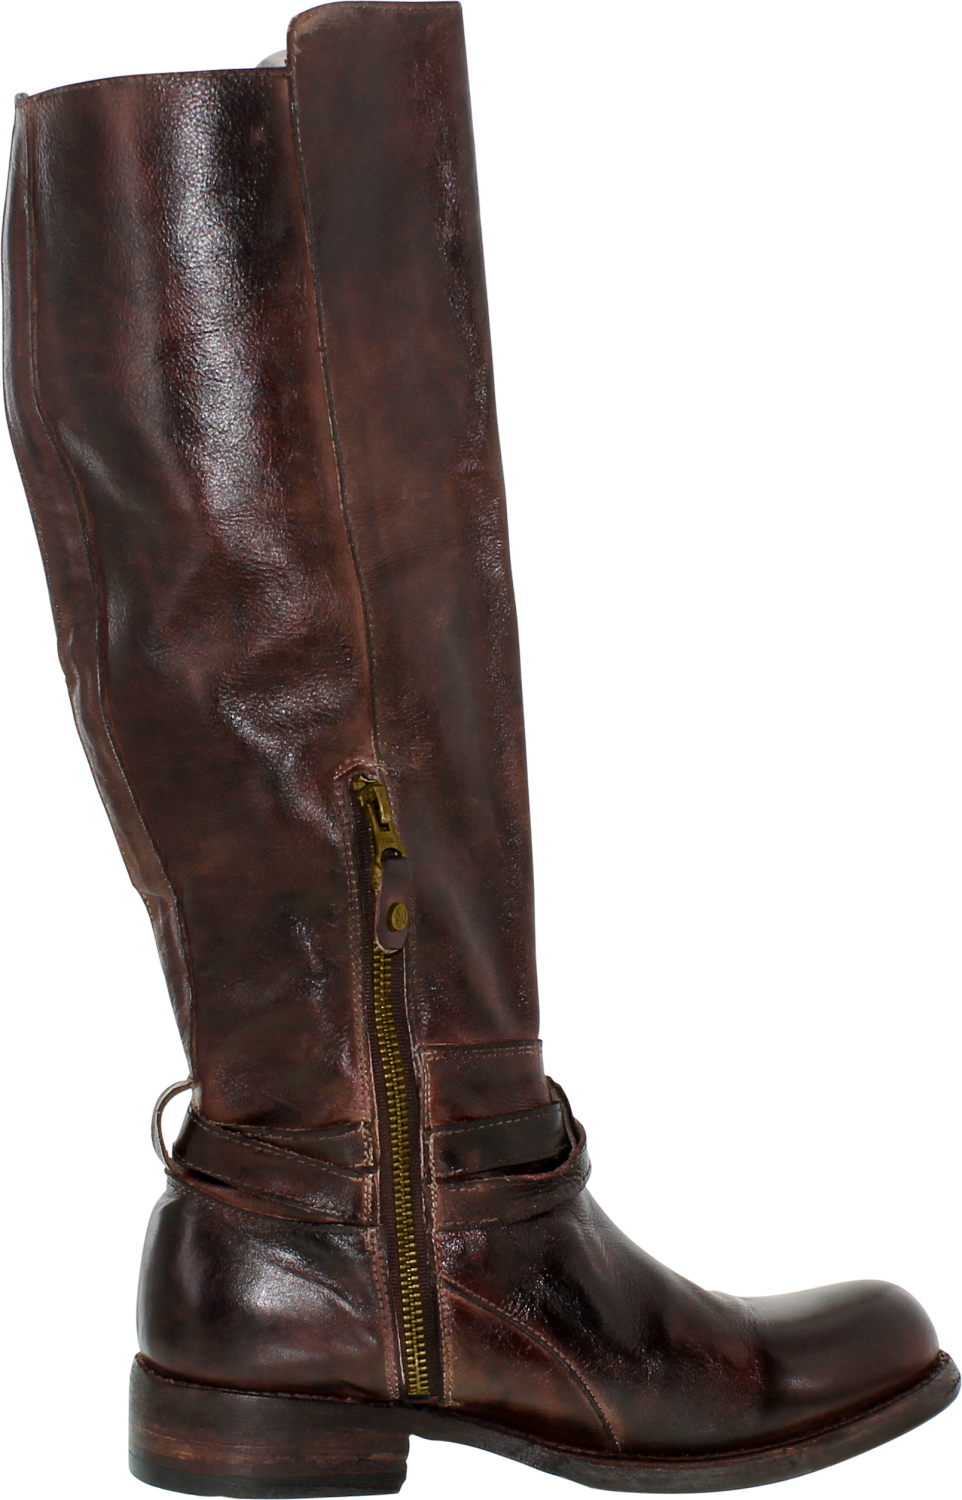 bed stu s bristol knee high leather boot ebay